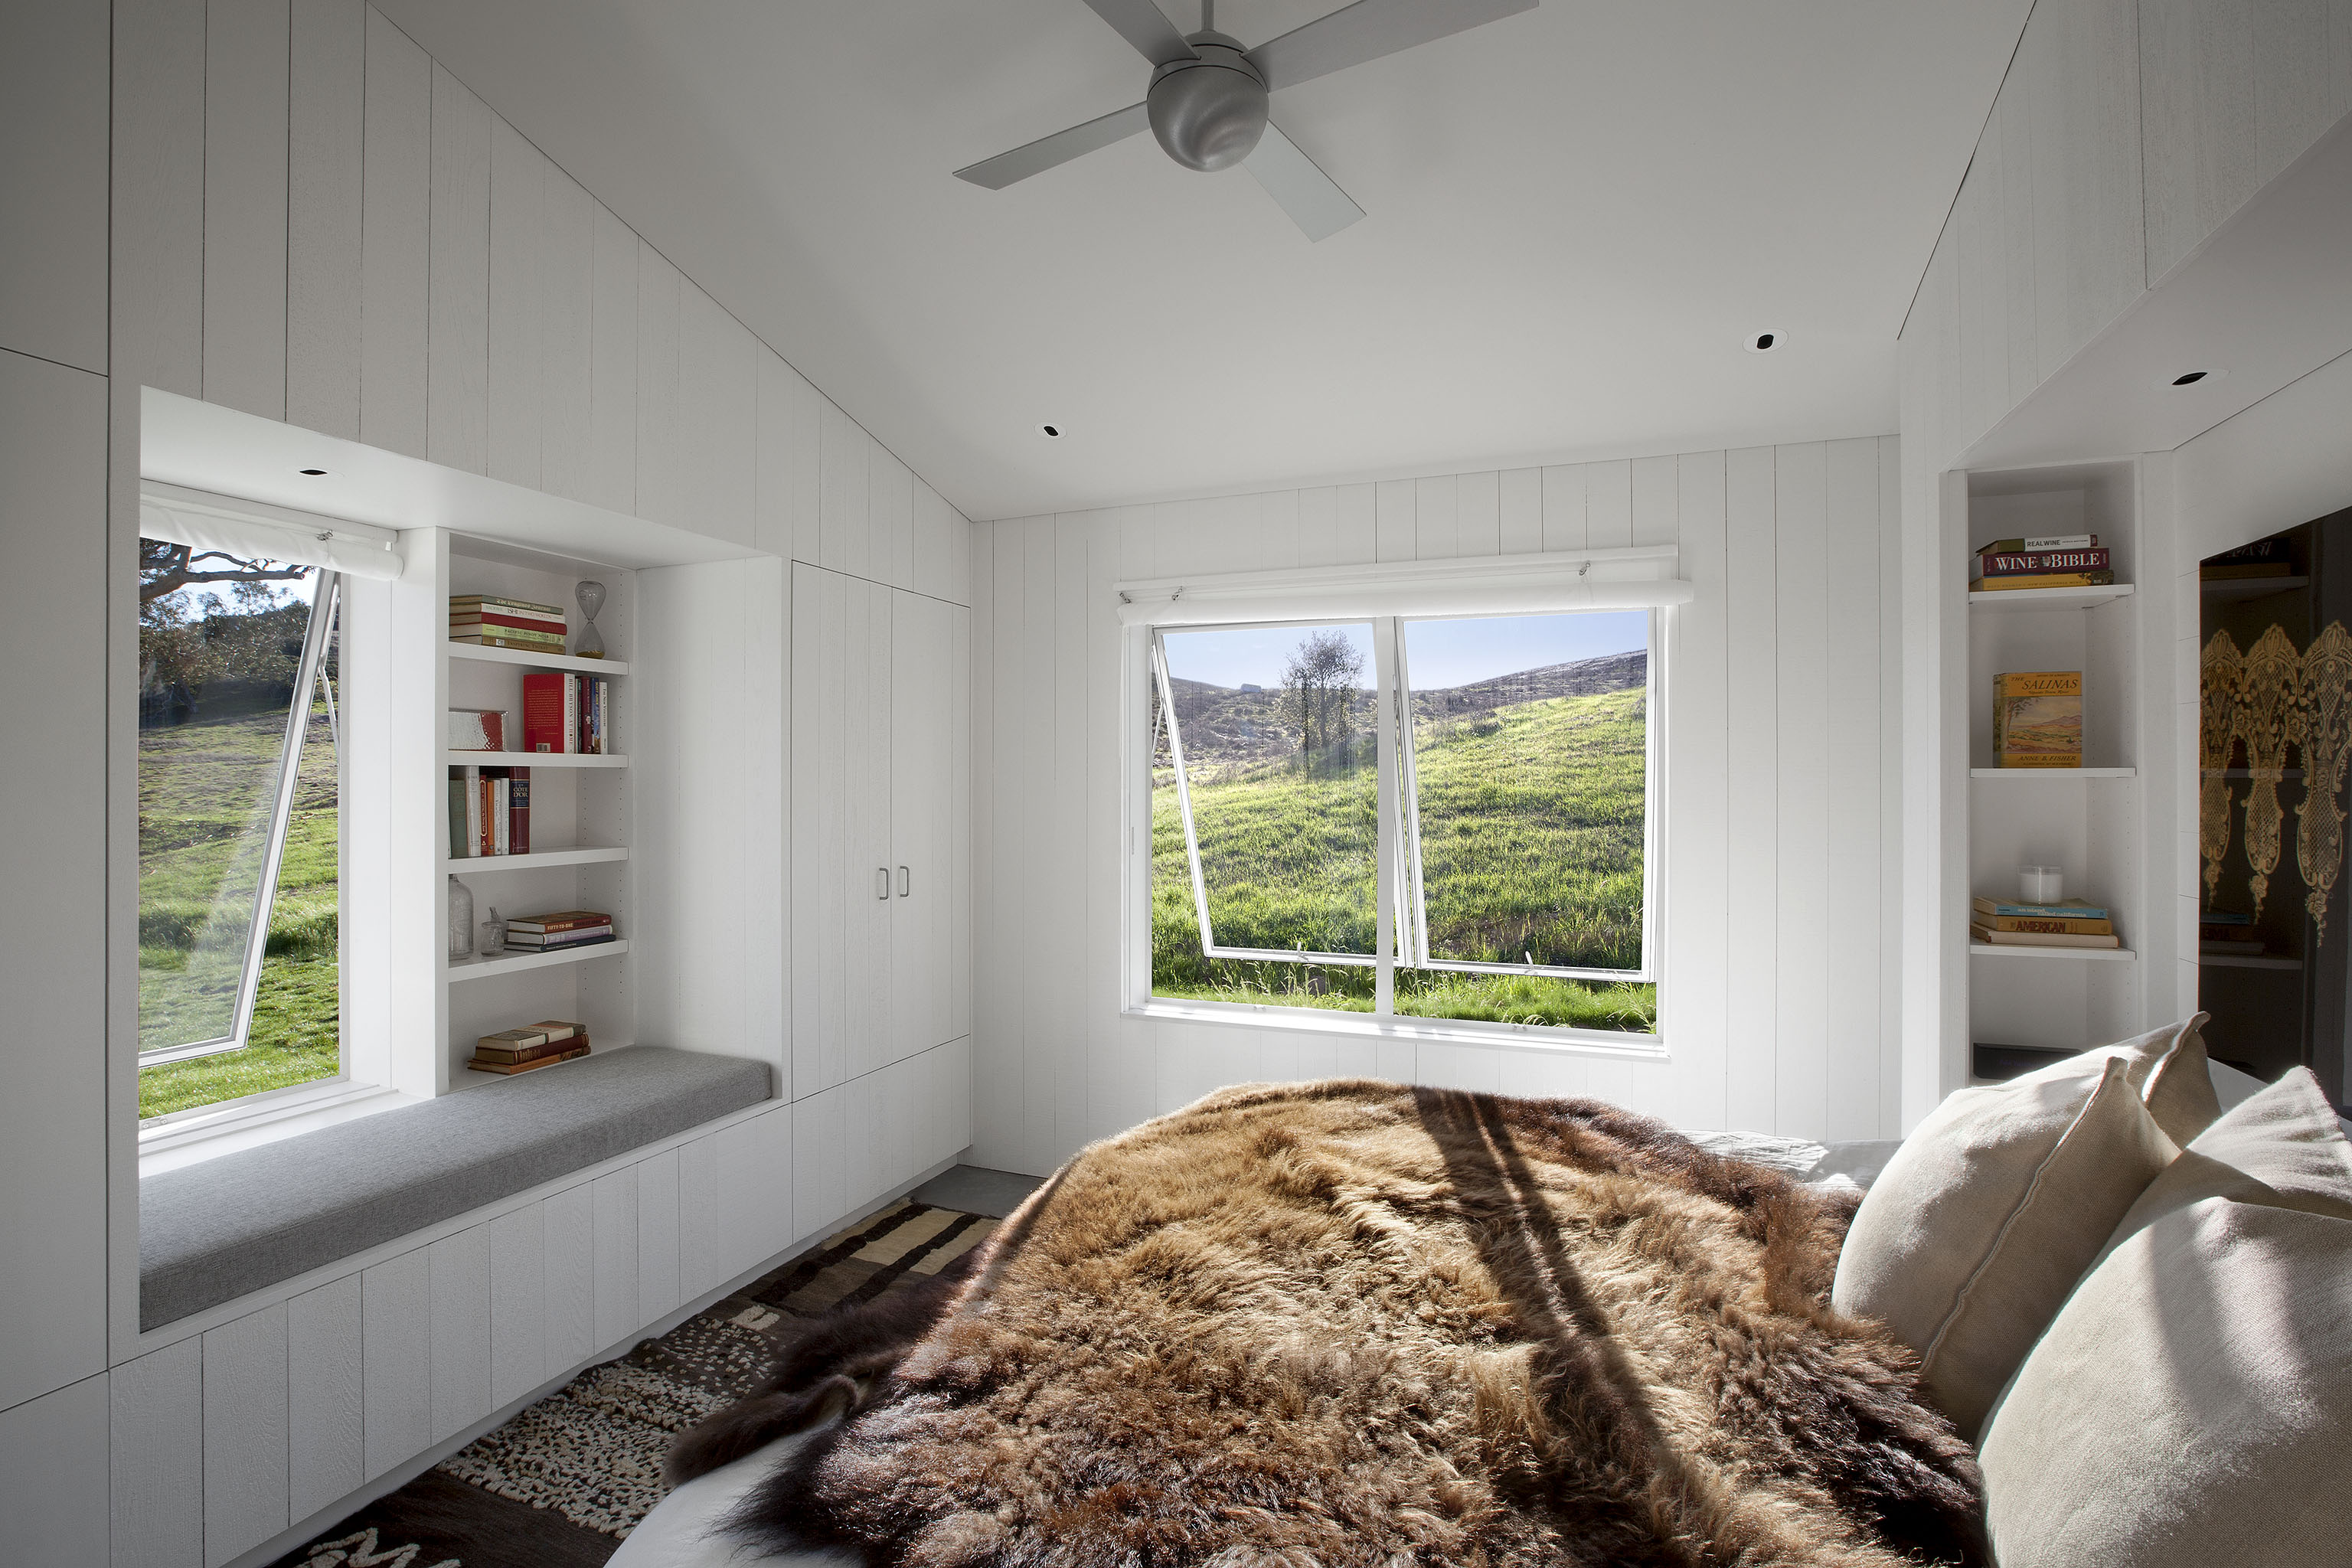 Bedroom seen here is equipped with a large window seat and built-in shelving, plus large opening windows for interaction with the environment. Animal fur bedding reinforces the connection to nature.